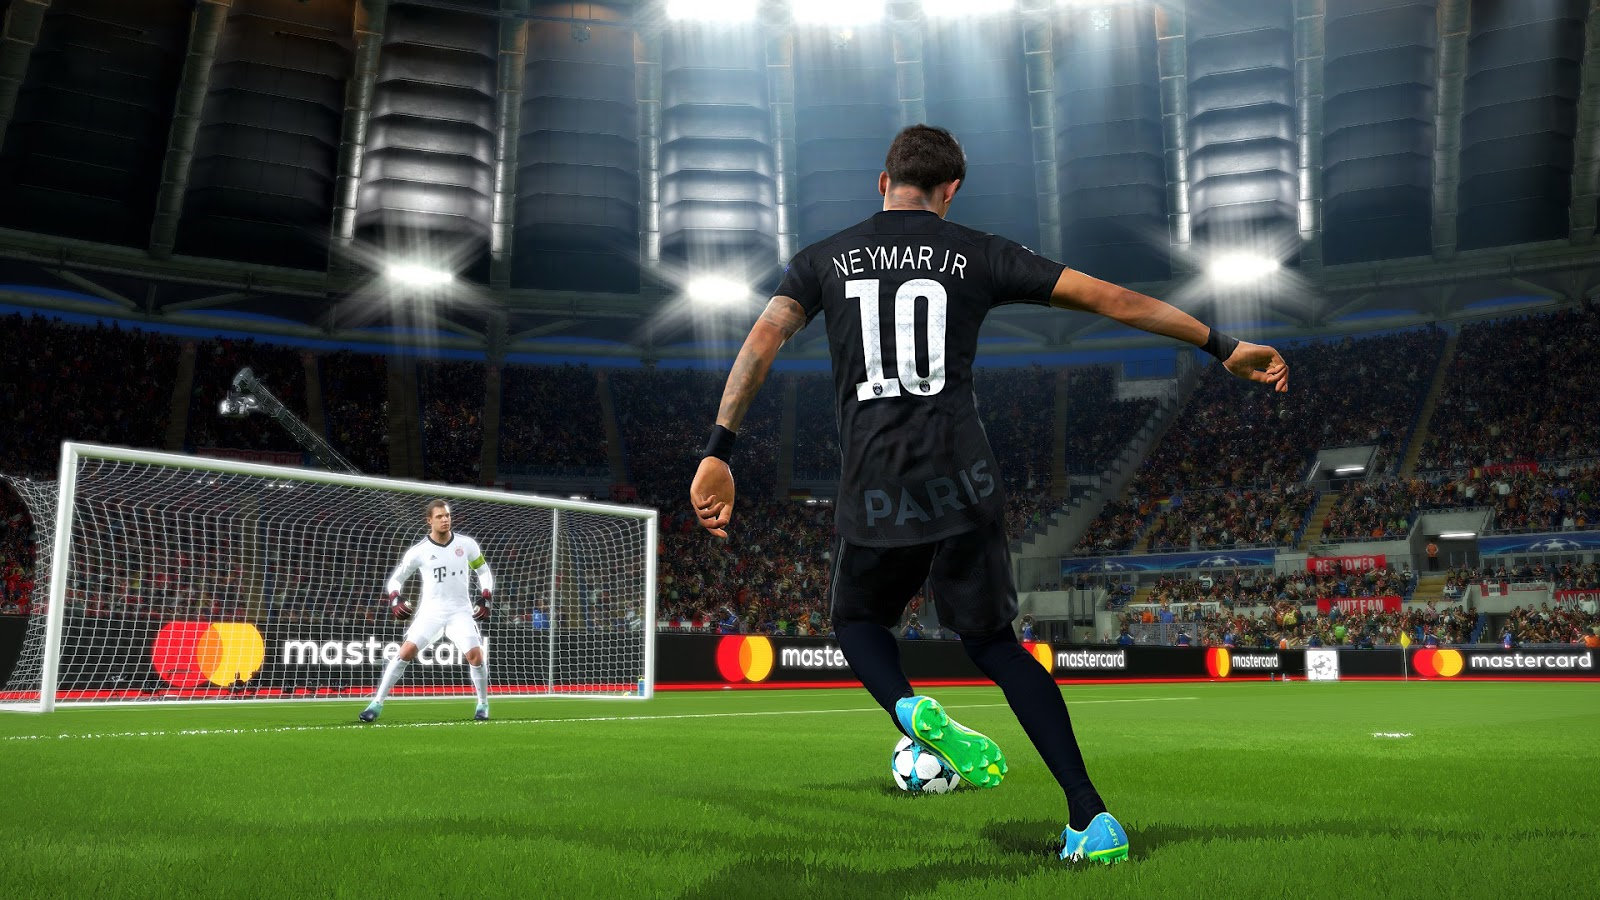 Pes 2018 Pes Professionals Patch 2018 V2 2 World Cup 2018